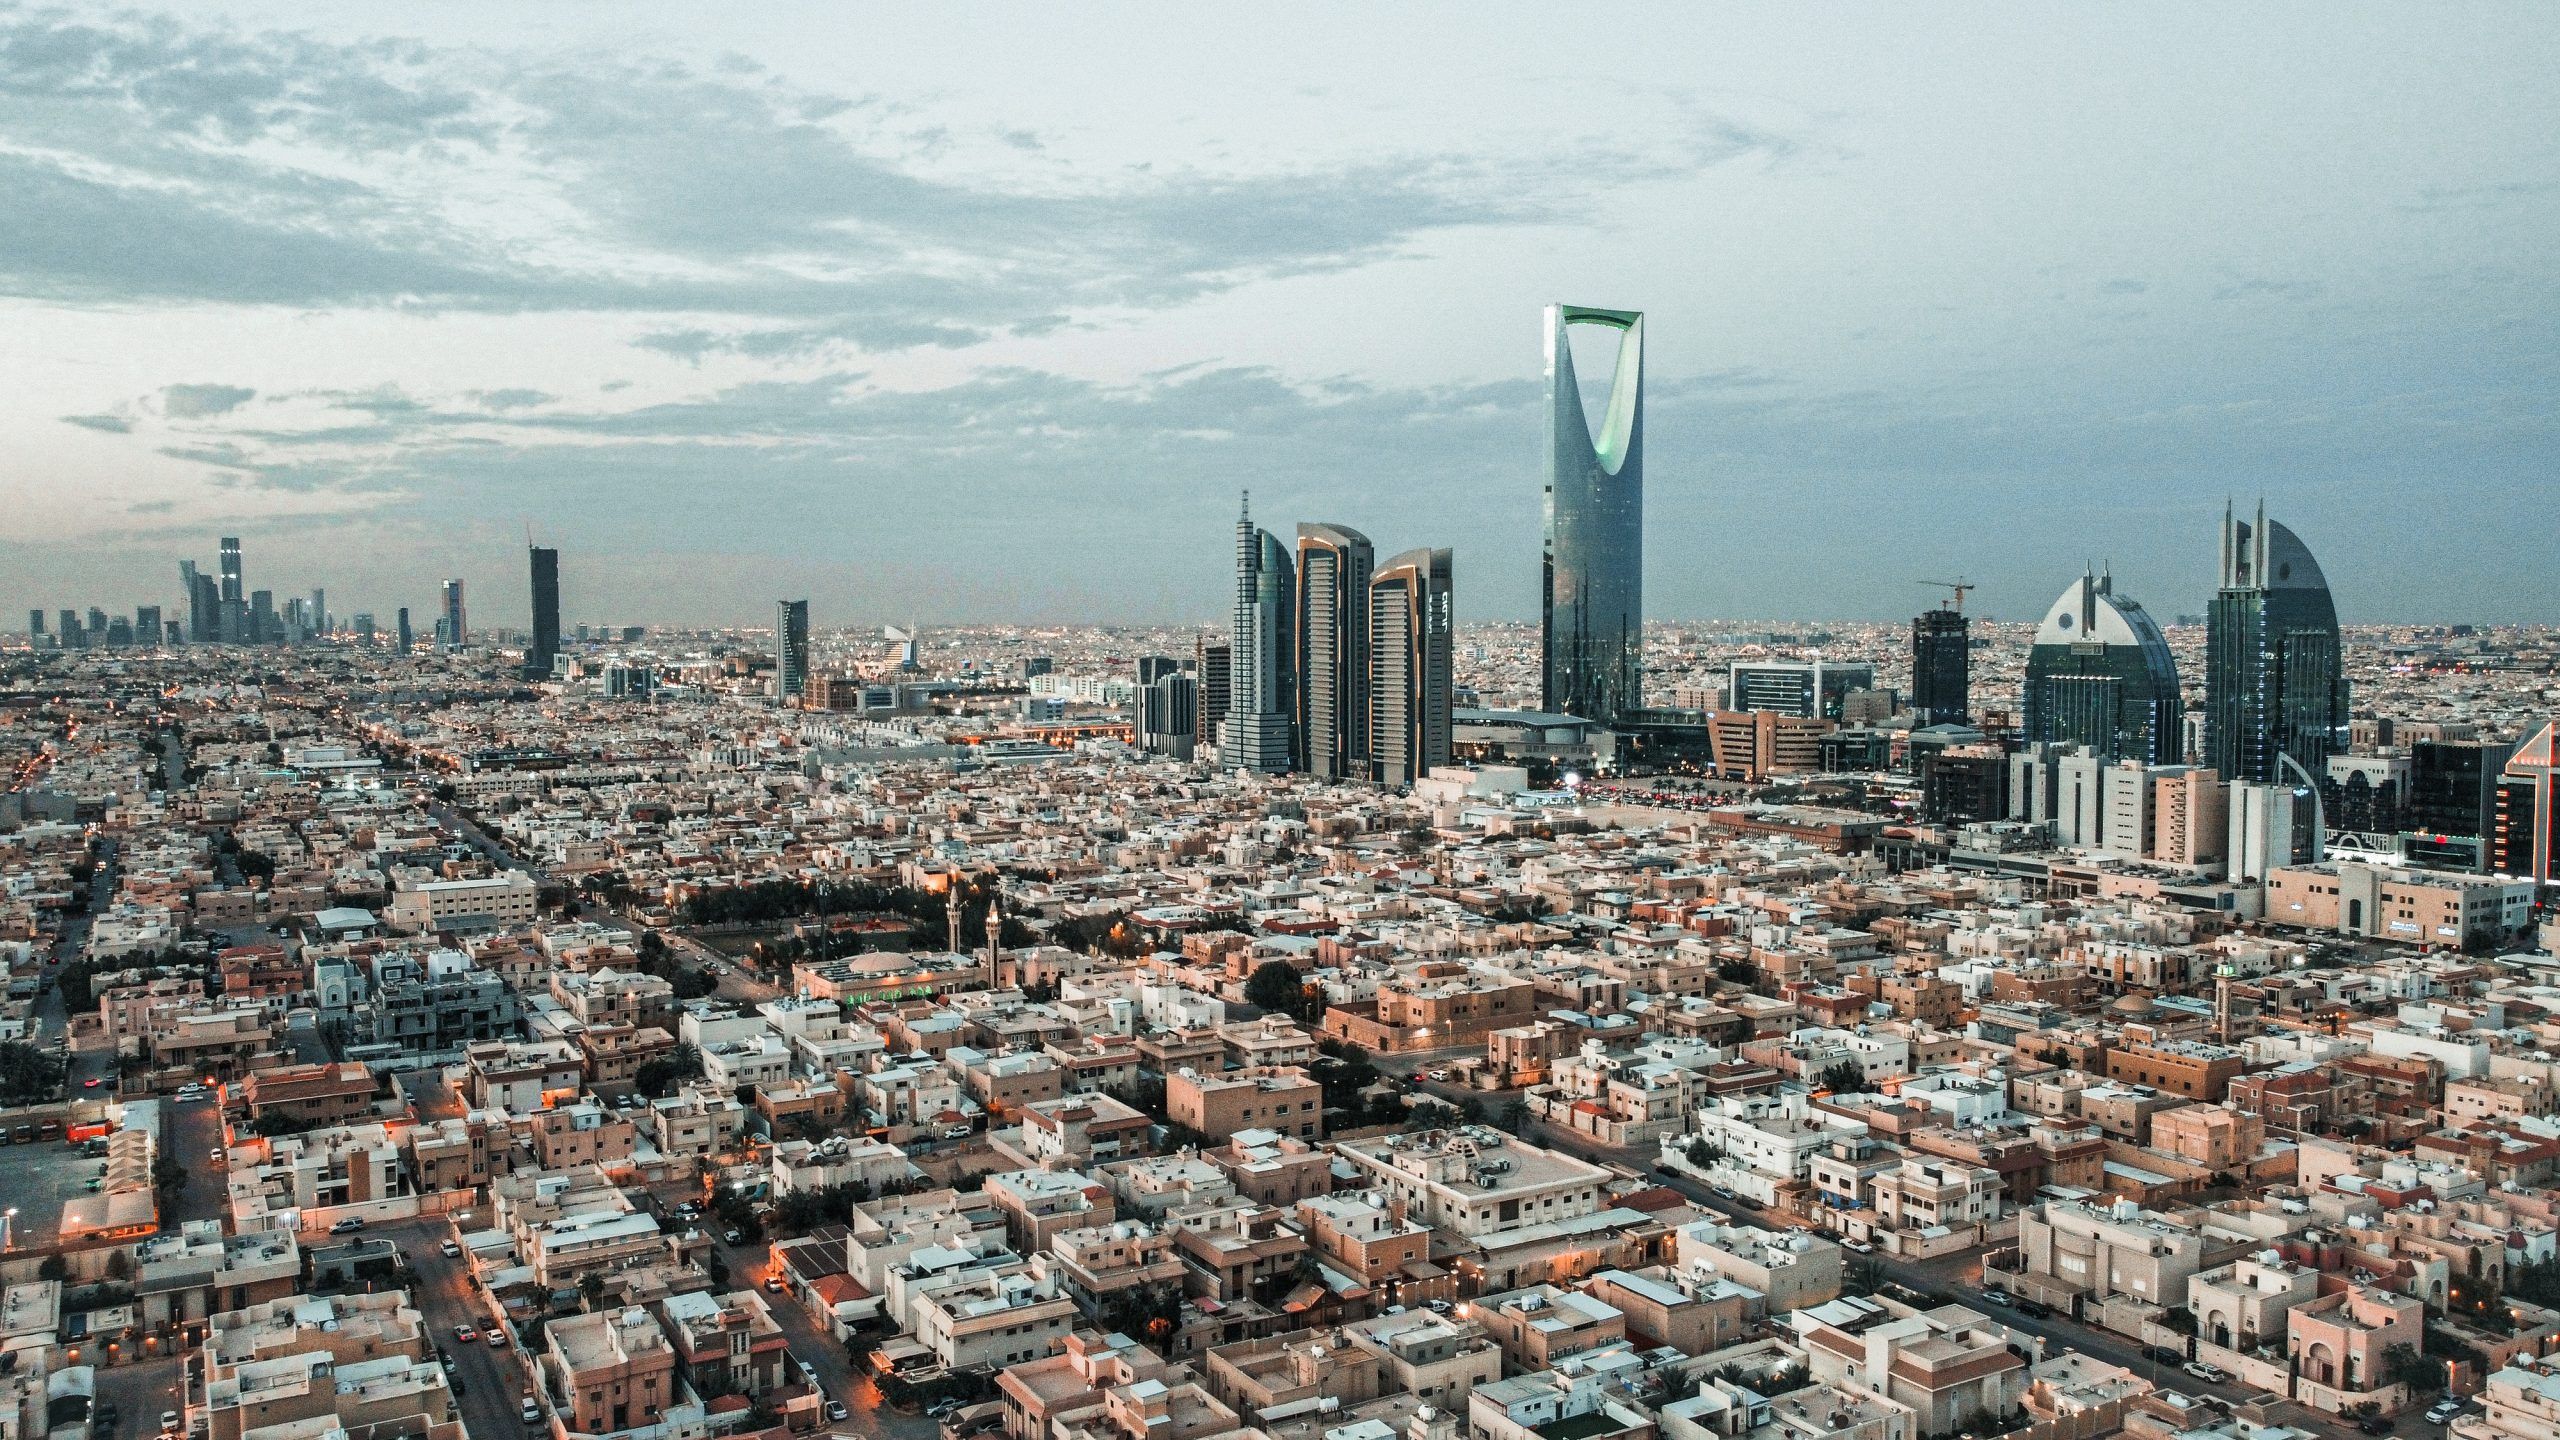 city view skyline of Riyadh with many buildings